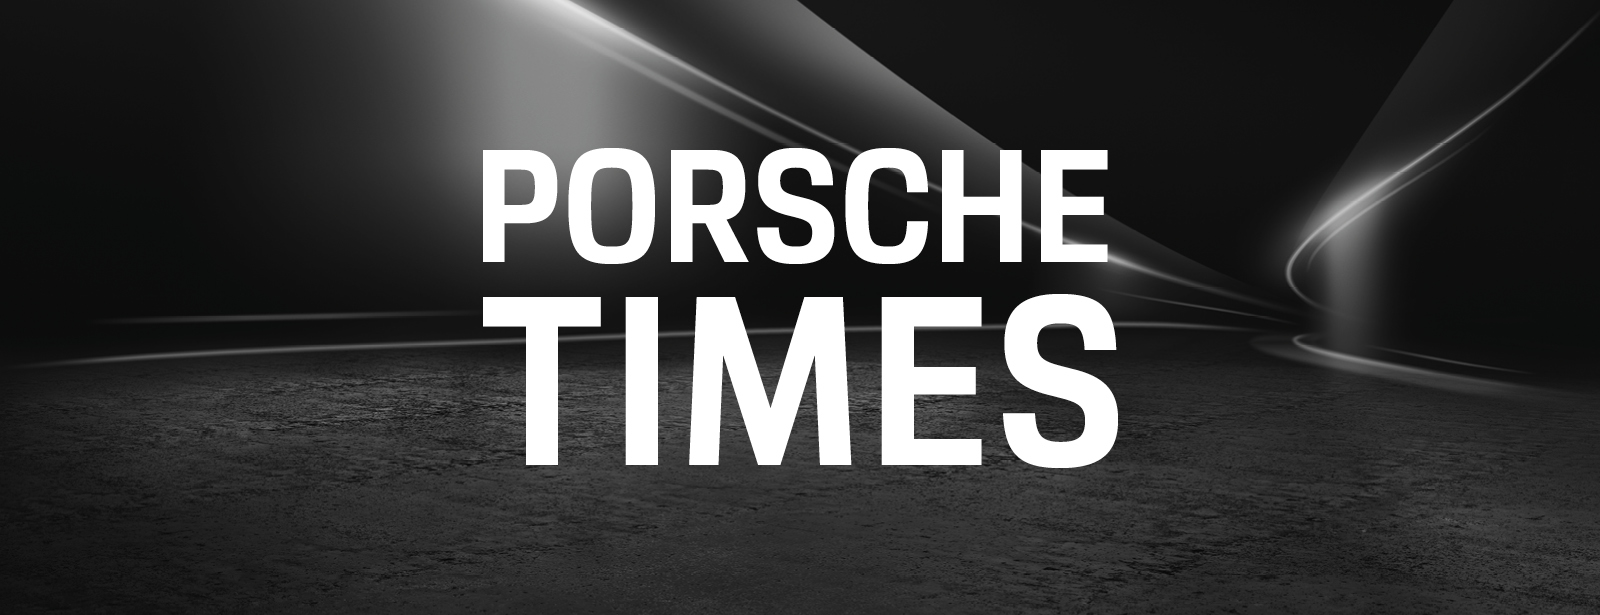 Porsche Times